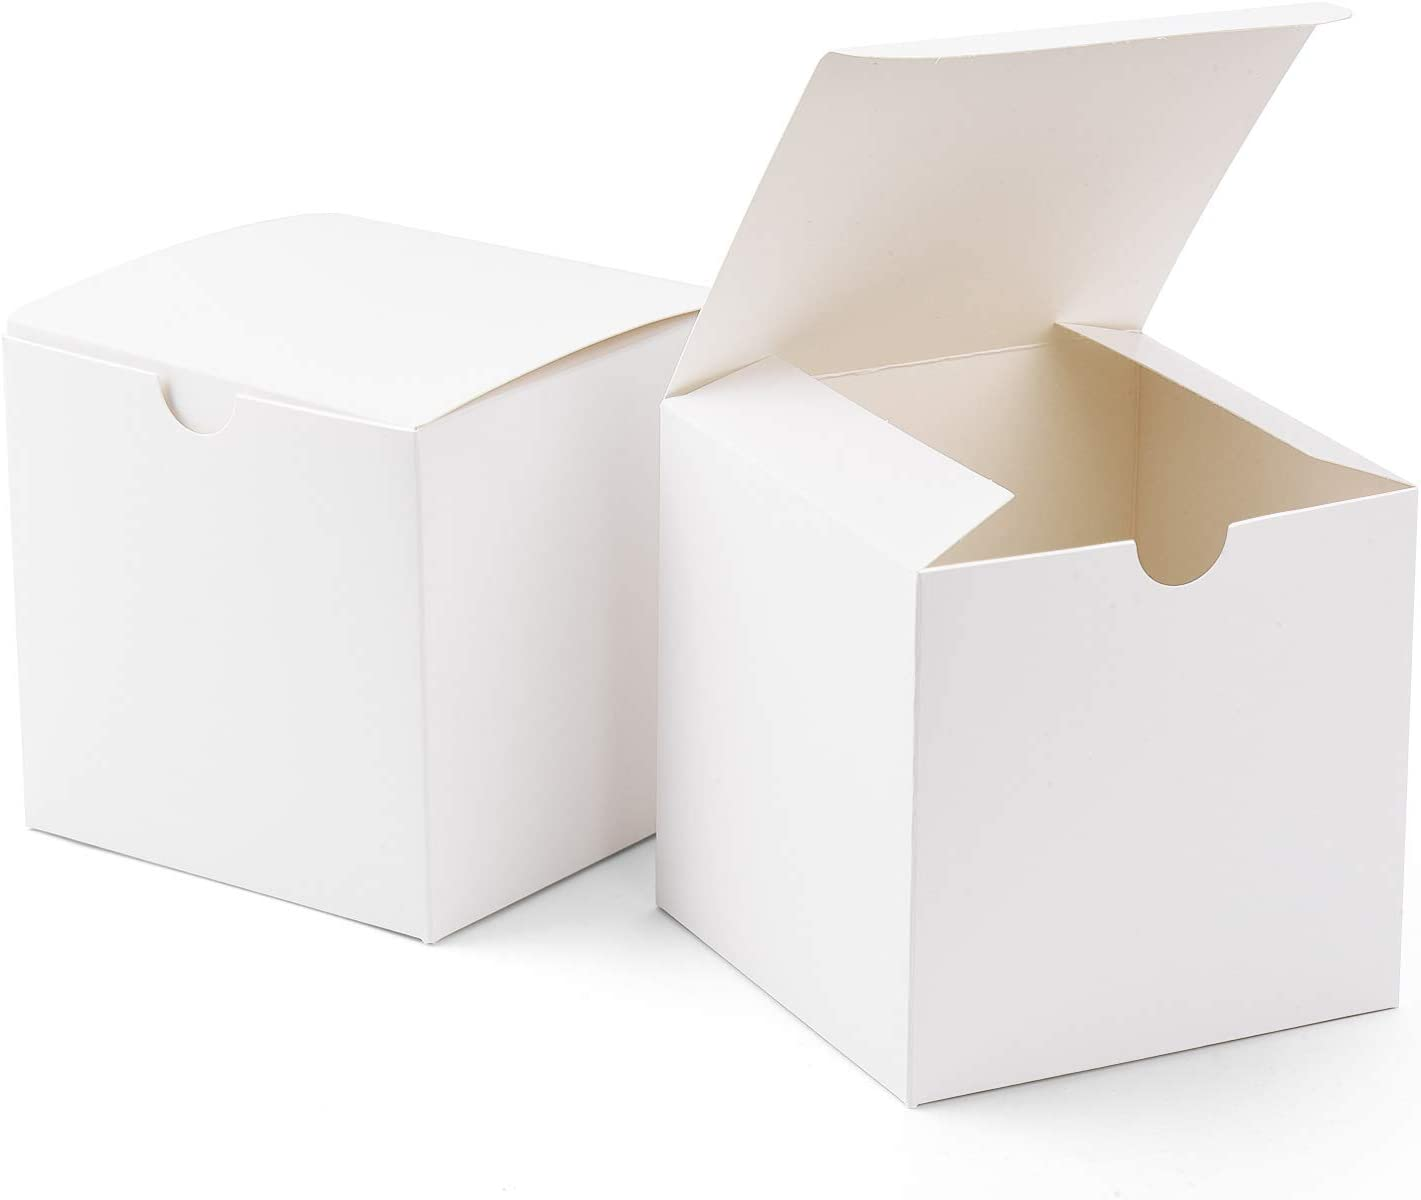 """GSSUSA Small Gift Boxes 100Pack 4x4x4"""" White Kraft Gift Boxes with Lids for Gifts, Crafting, Cupcake Boxes"""